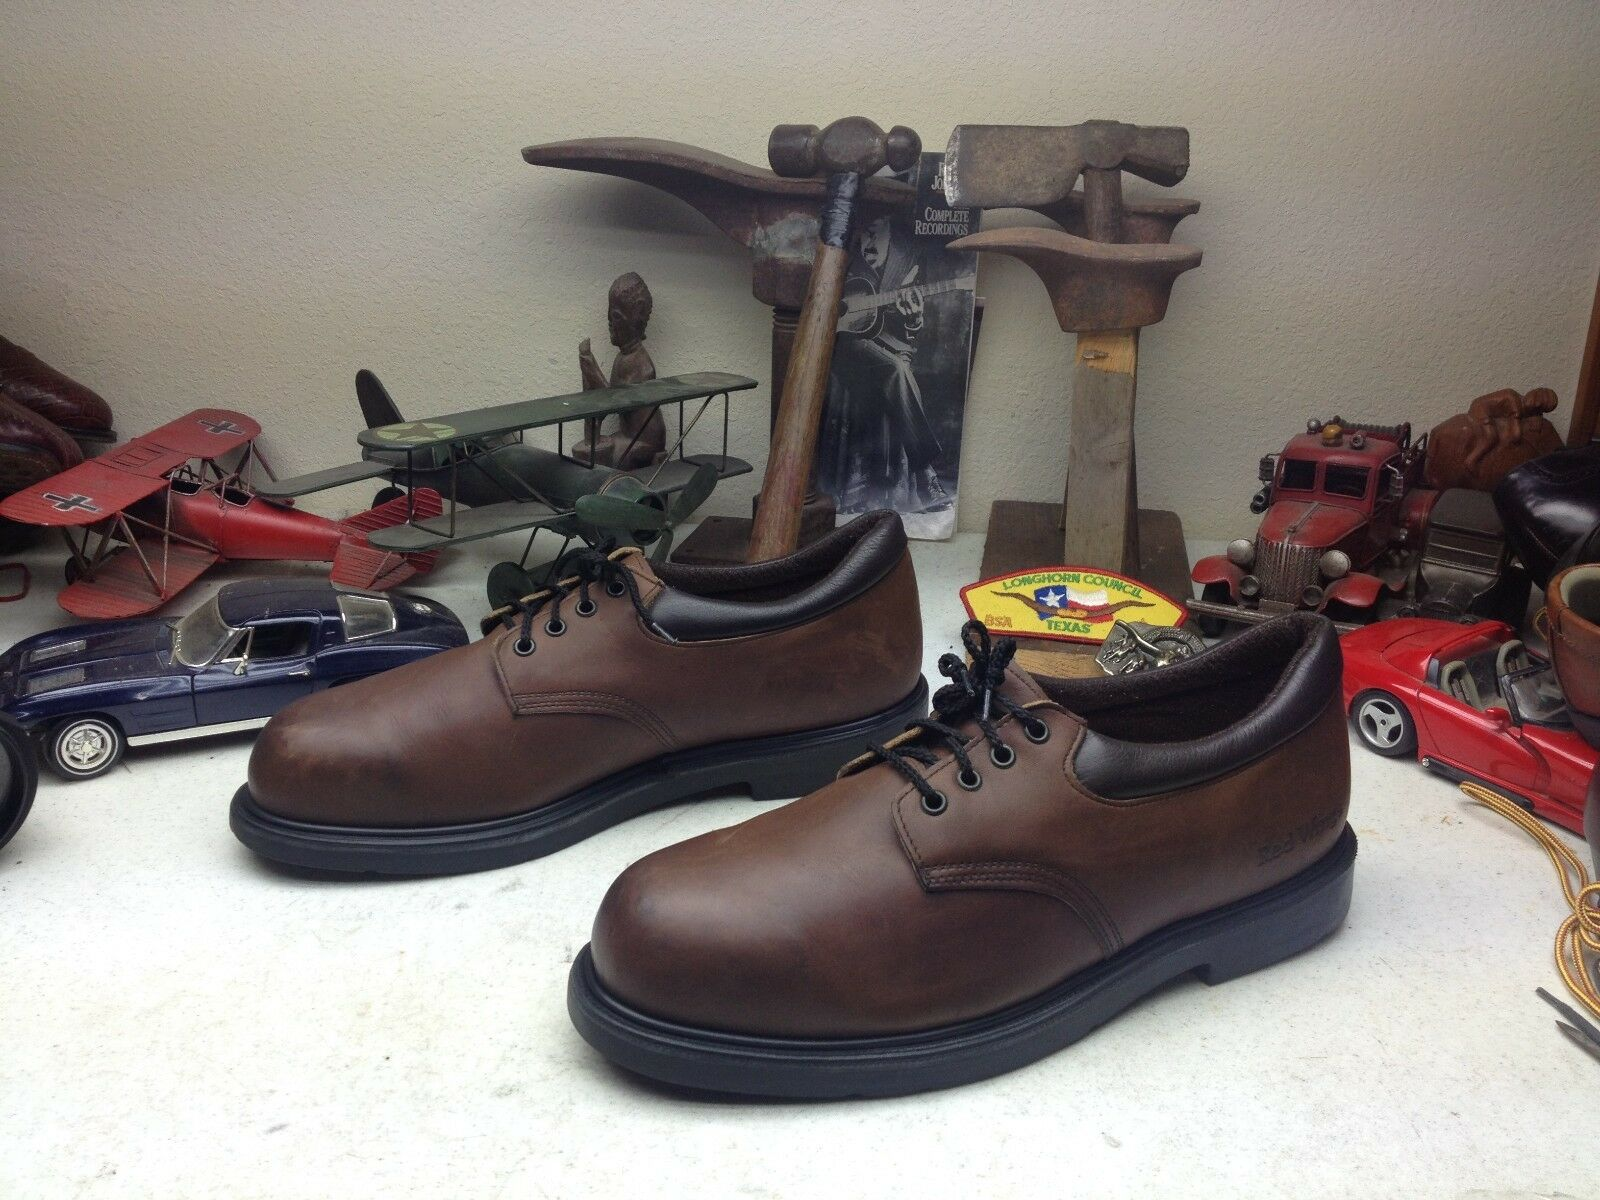 USA RED WING RUSTIC BROWN BROWN BROWN LEATHER WESTERN TRAIL BOSS RANCH WORKSHOP SHOES 14D 78a828